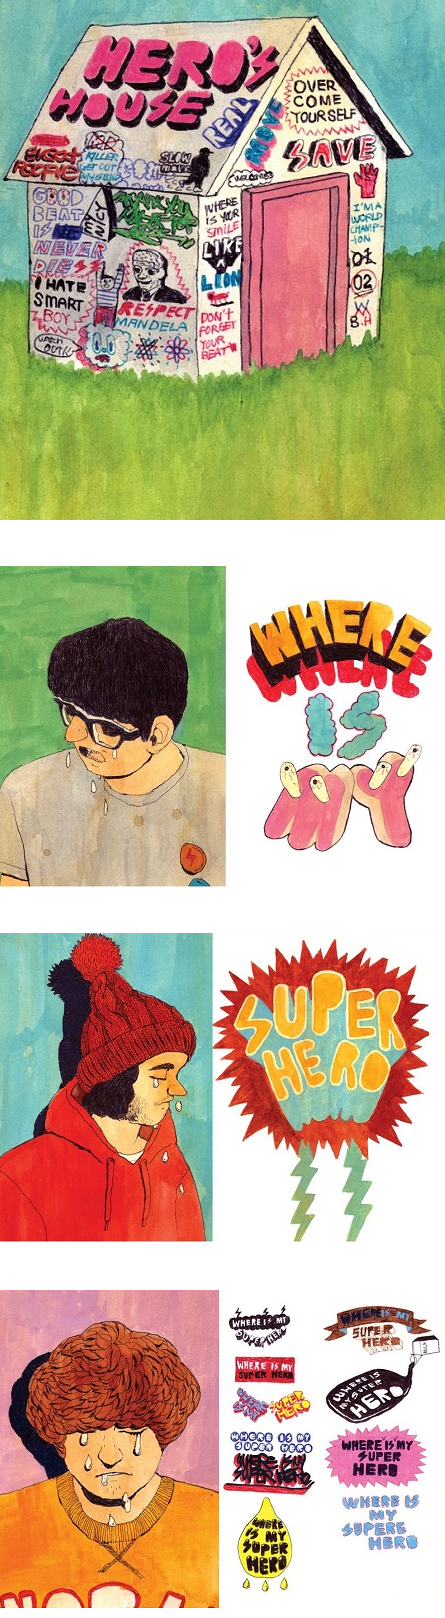 Sung-Mo-Kang-zine-illustrations